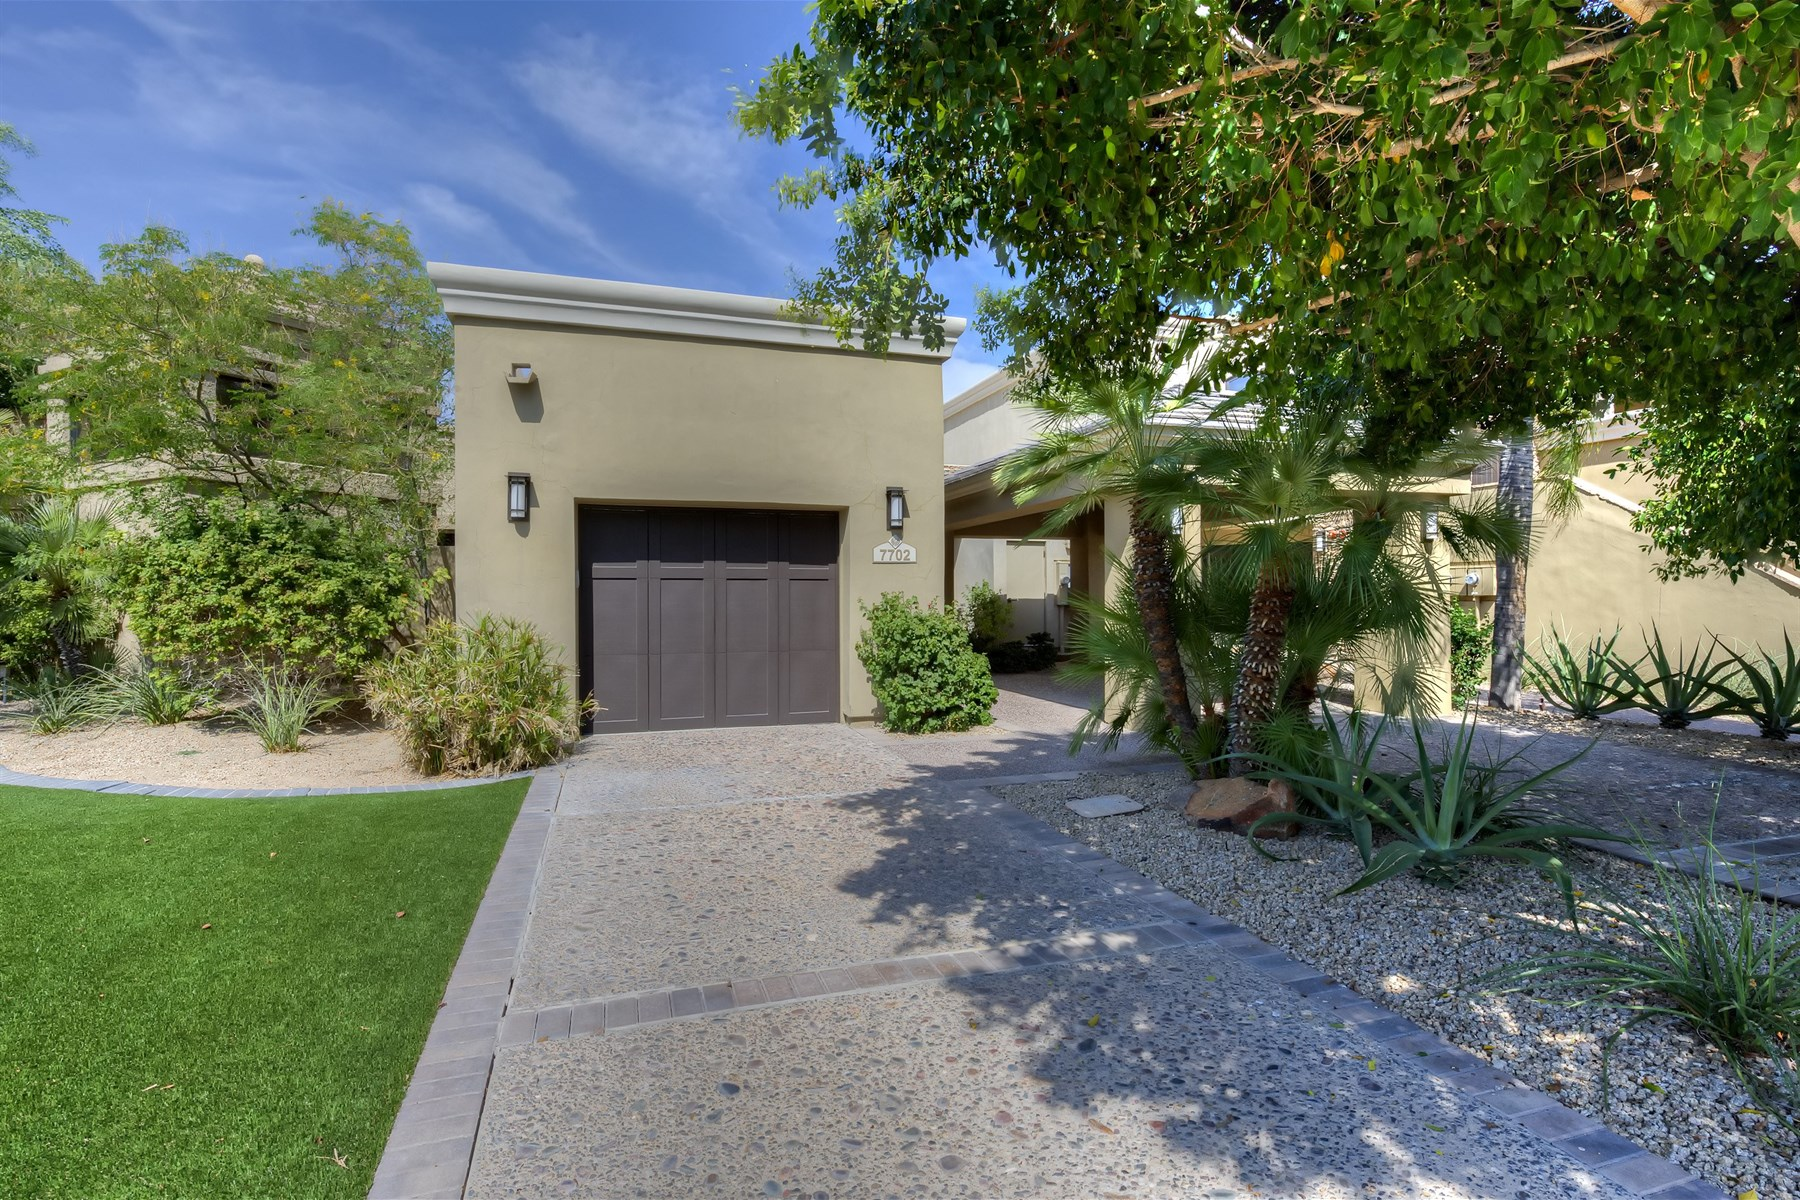 Fractional Ownership for Sale at Deluxe 3 Week Fractional Ownership Opportunity 4531 N Phoenician Place #7702 Phoenix, Arizona, 85018 United States